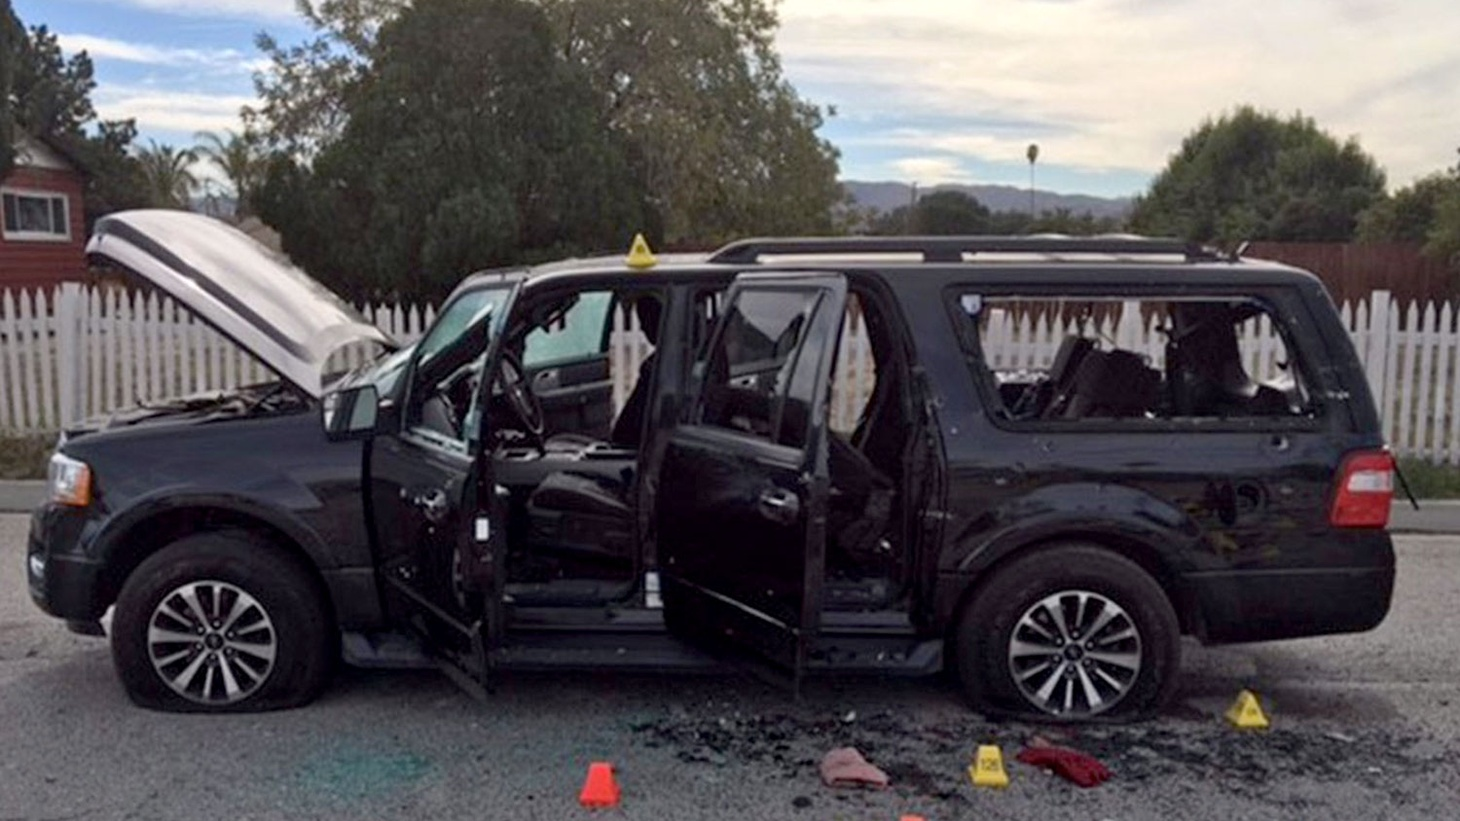 The suspect's vehicle involved in a shootout with the police, in the 2015 San Bernardino shooting.